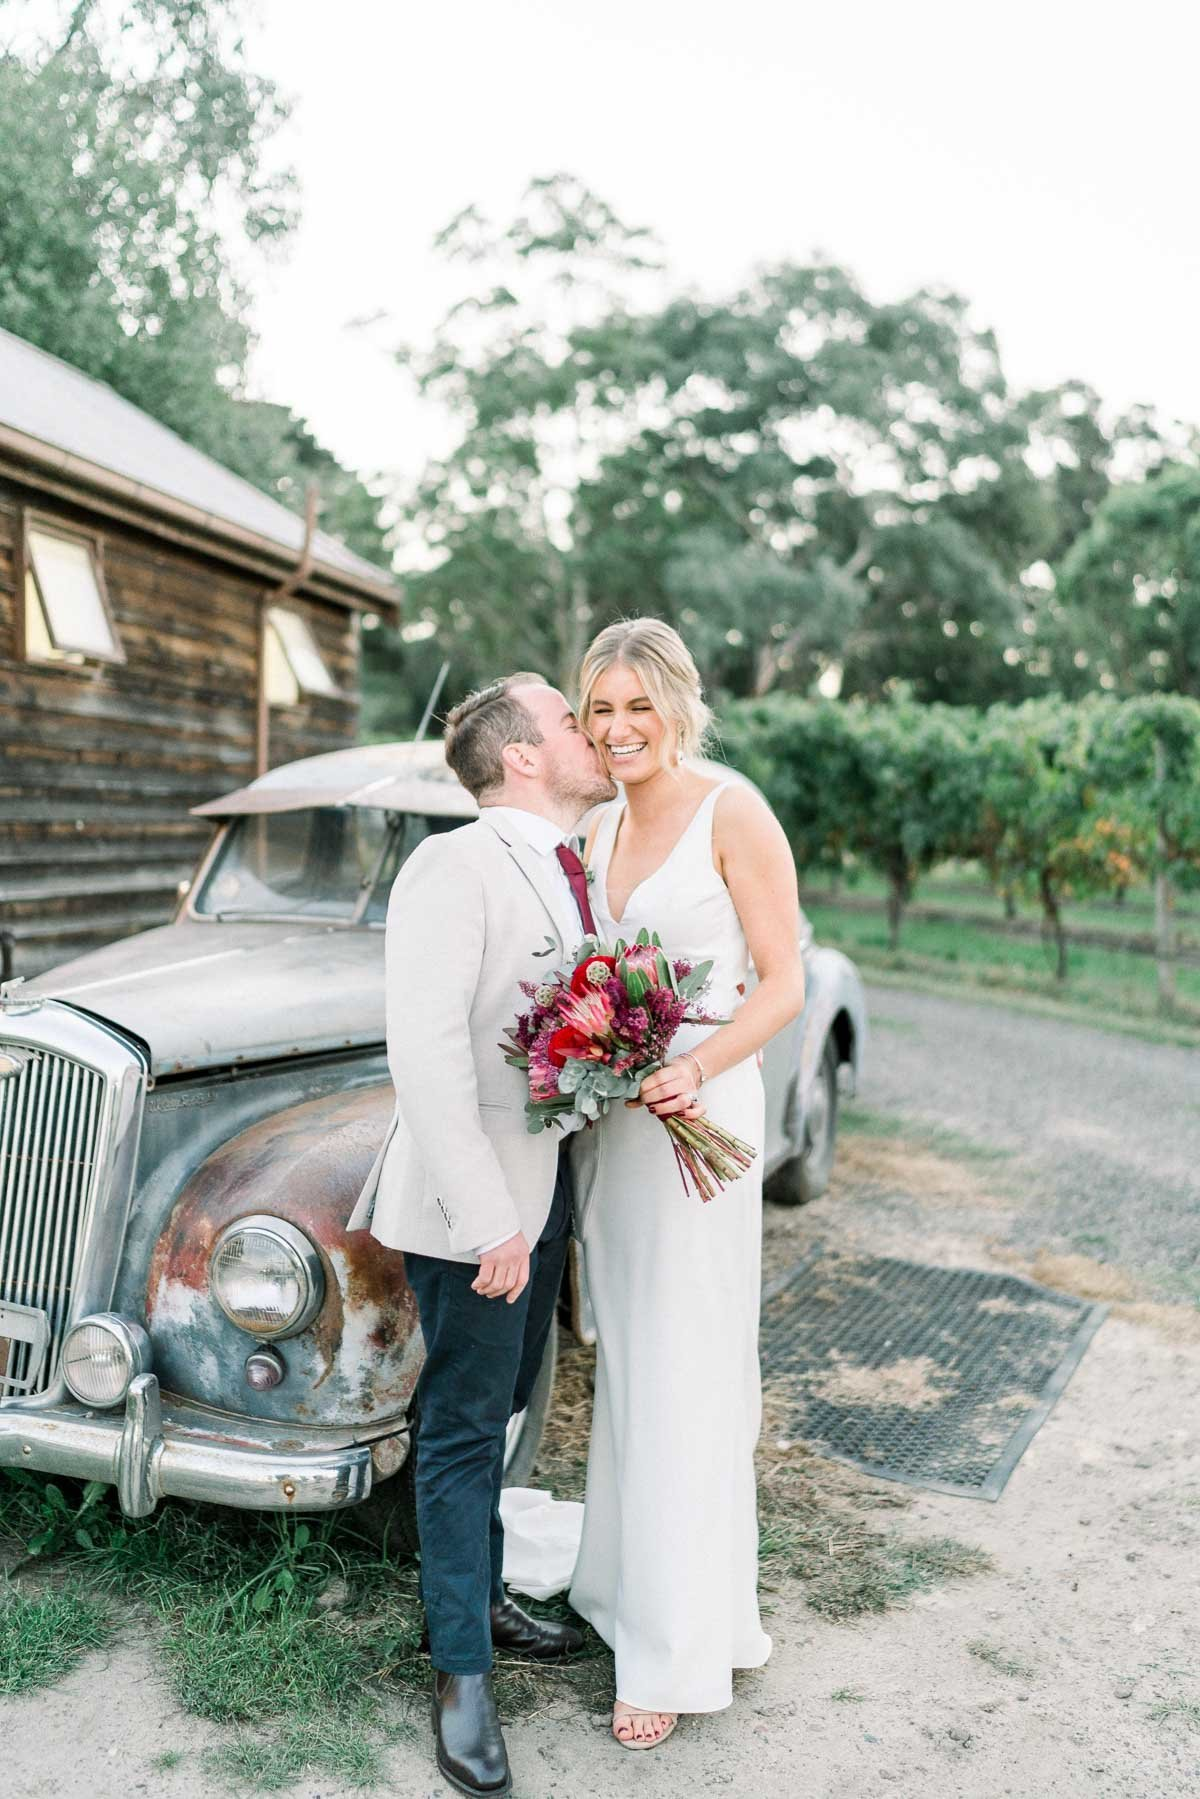 rustic-yarra-valley-wedding-venue-acacia-ridge-georgia-james-08451